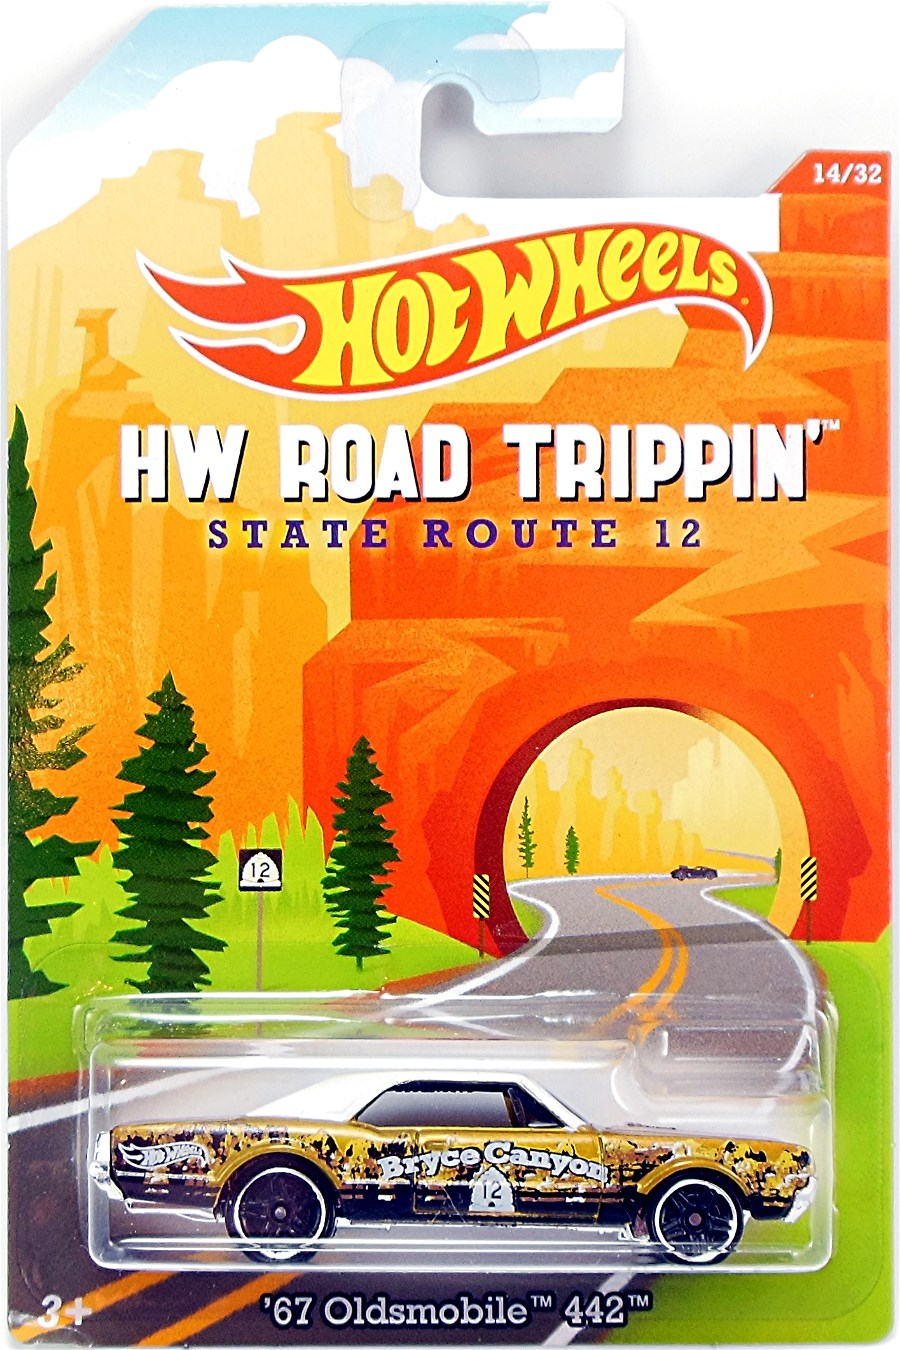 Hw Road Trippin Hot Wheels Newsletter